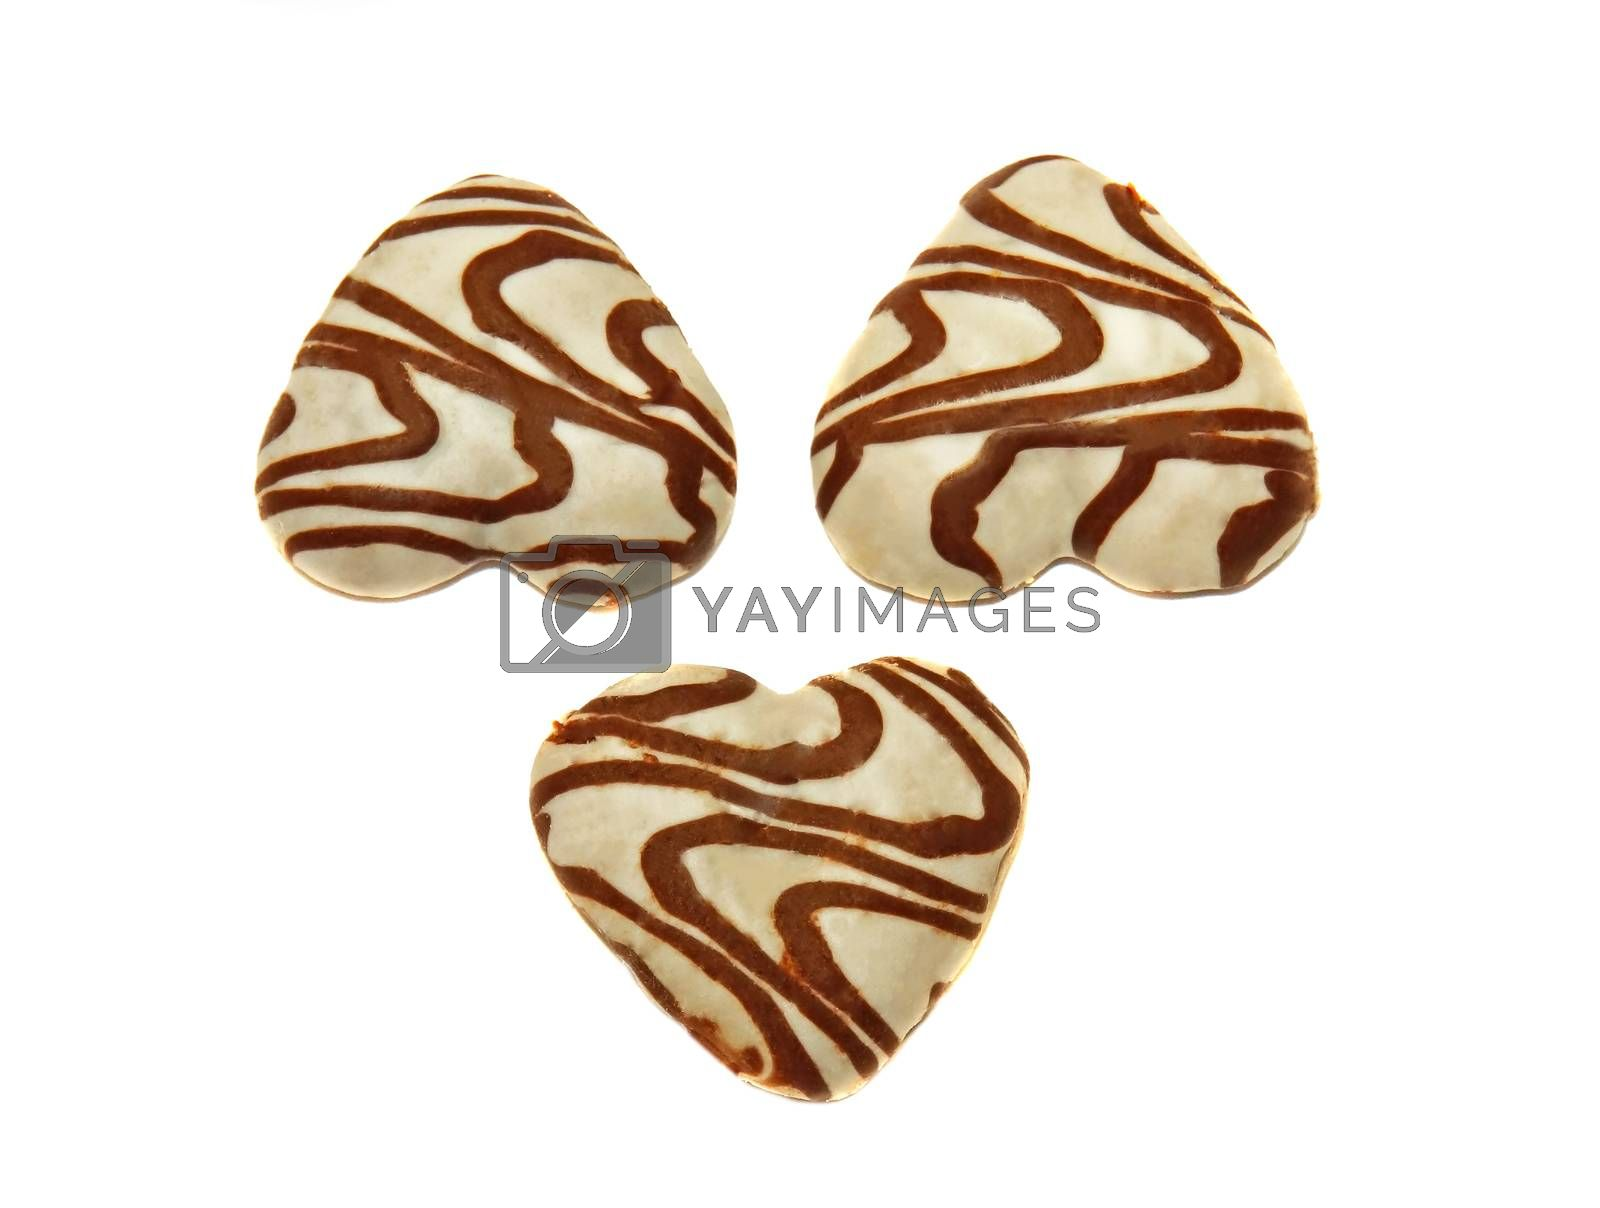 Three cookies, covered with whThree heart-shaped cookies covered by Chiffanna